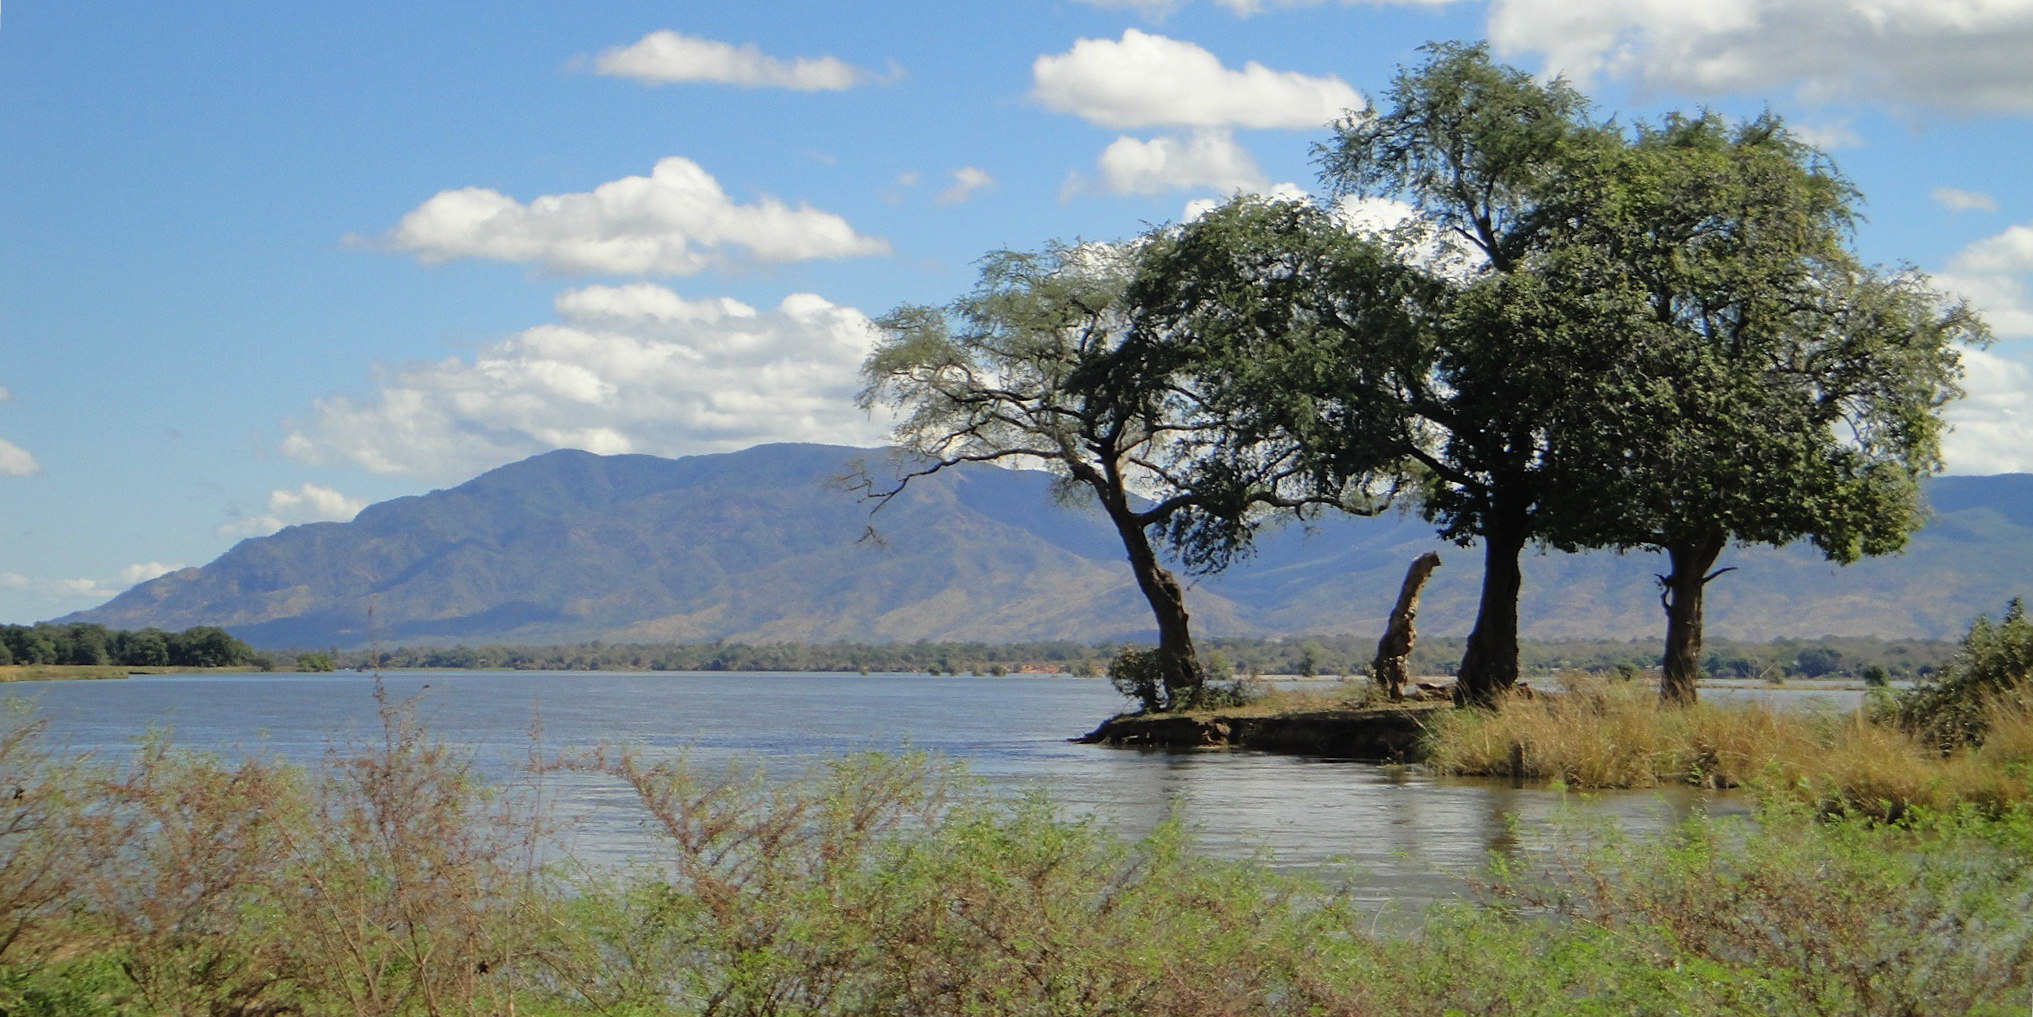 A wide expanse of water in Zambia is a great place to visit on a Zambia safari.